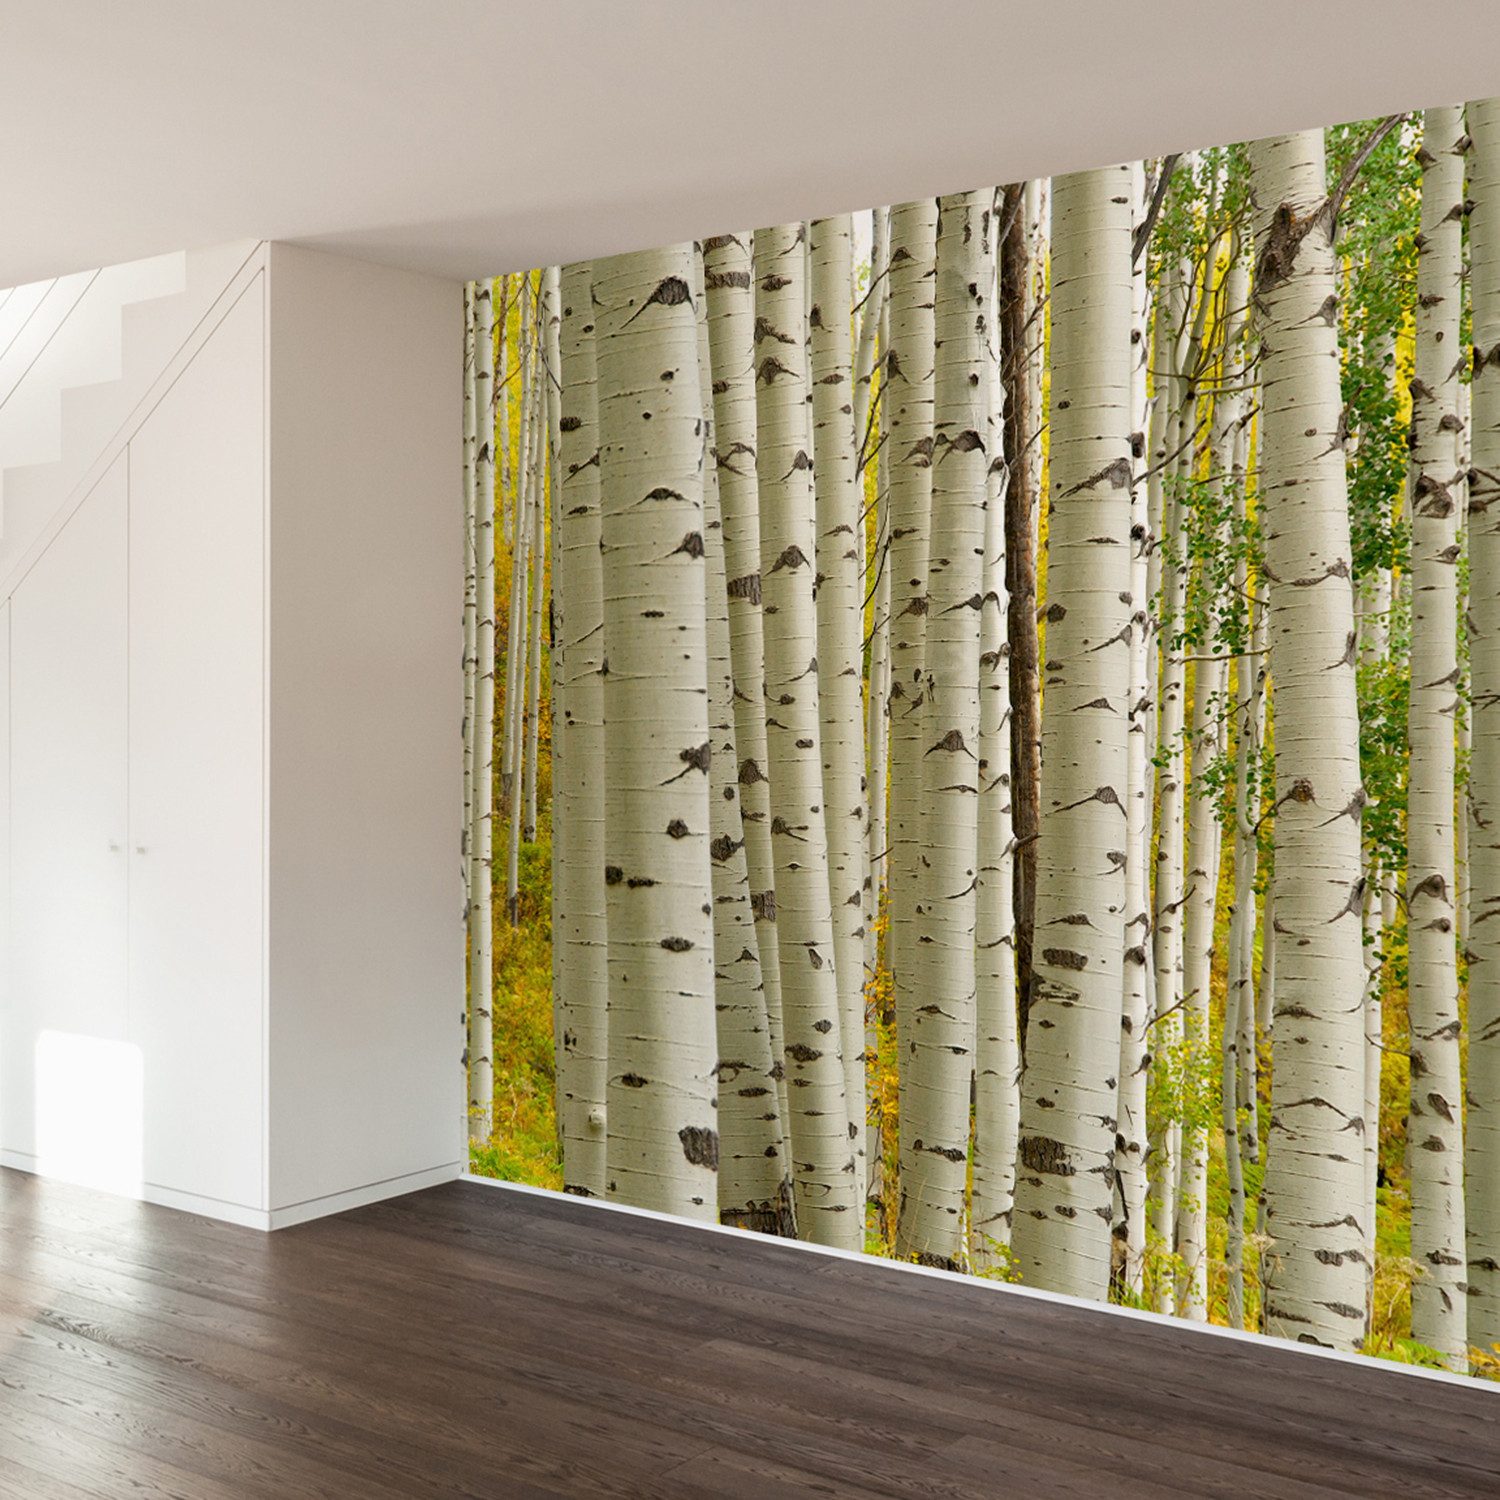 Birch forest wall mural decal 4 panels 93 width for Birch wall mural